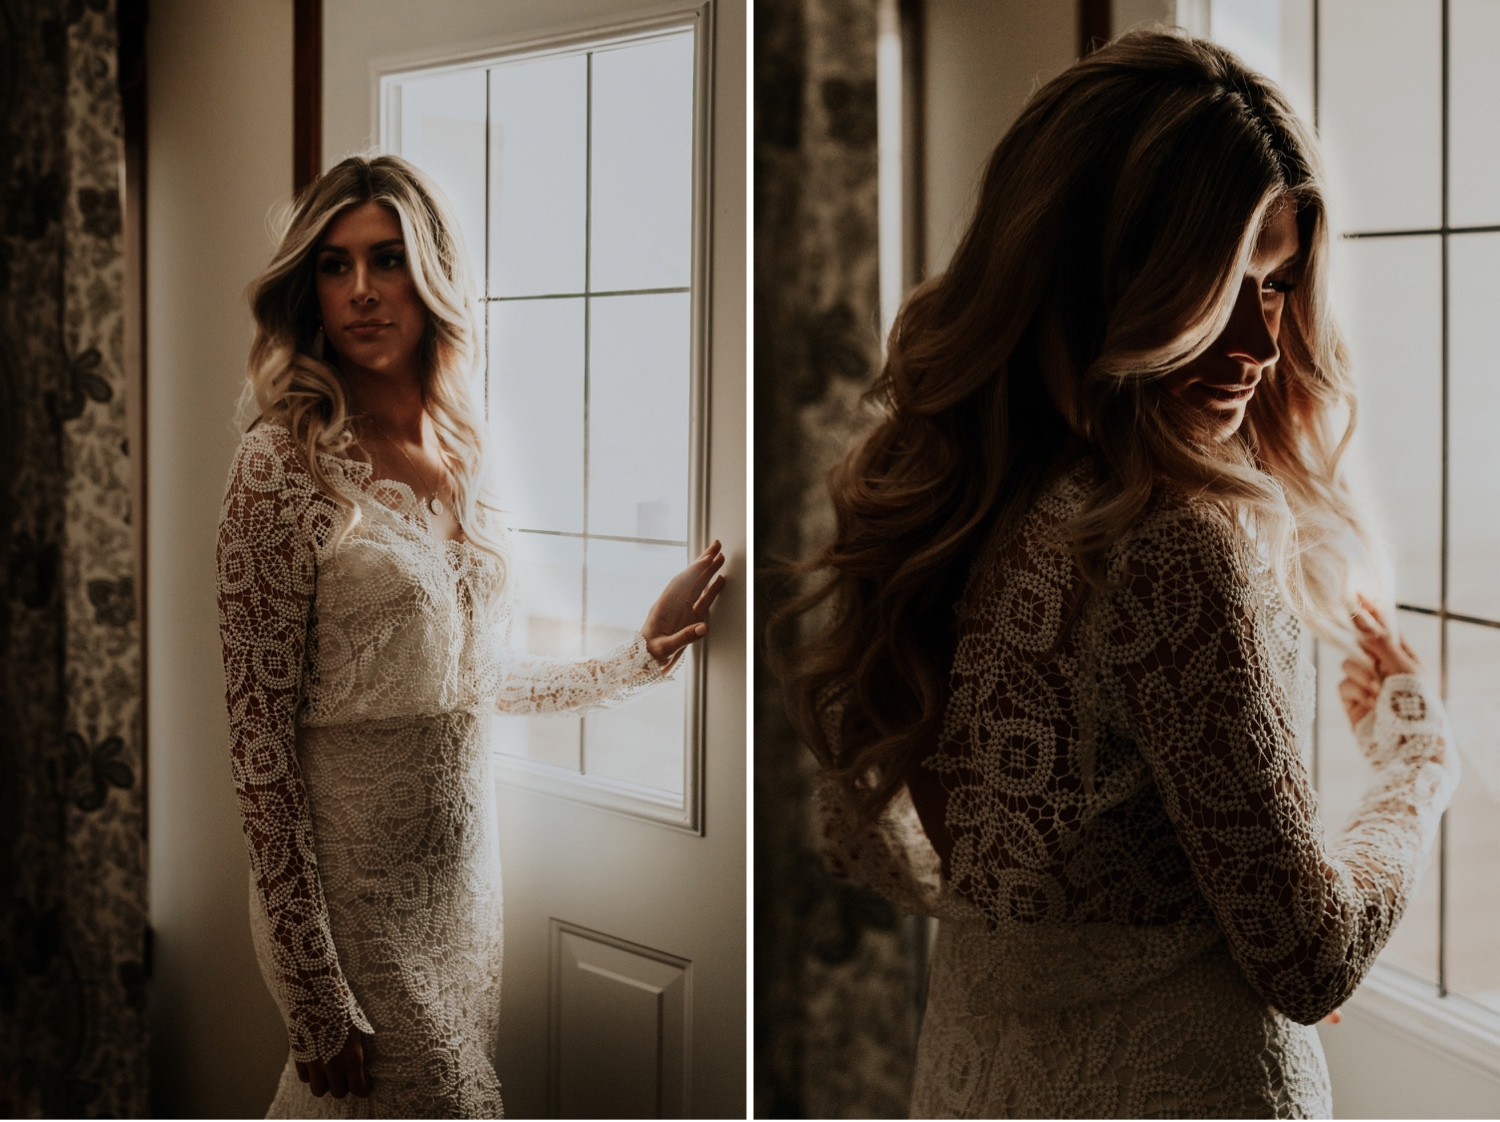 Wedding and Elopement Photography_Karly Ford Photo 40.jpg